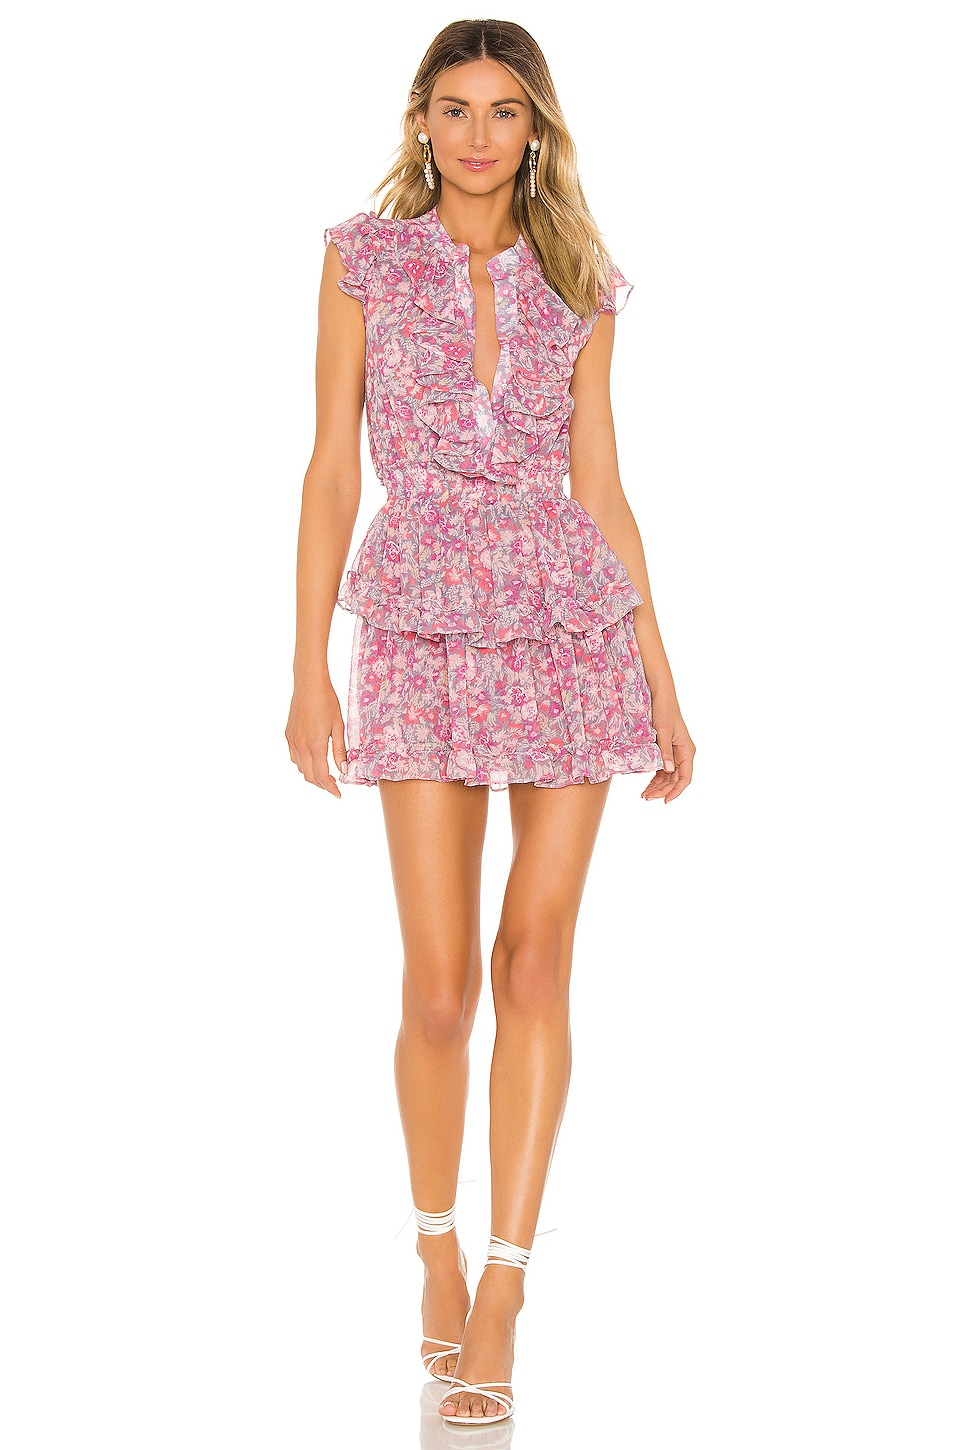 MISA Los Angeles Marnie Dress in Lilac Floral